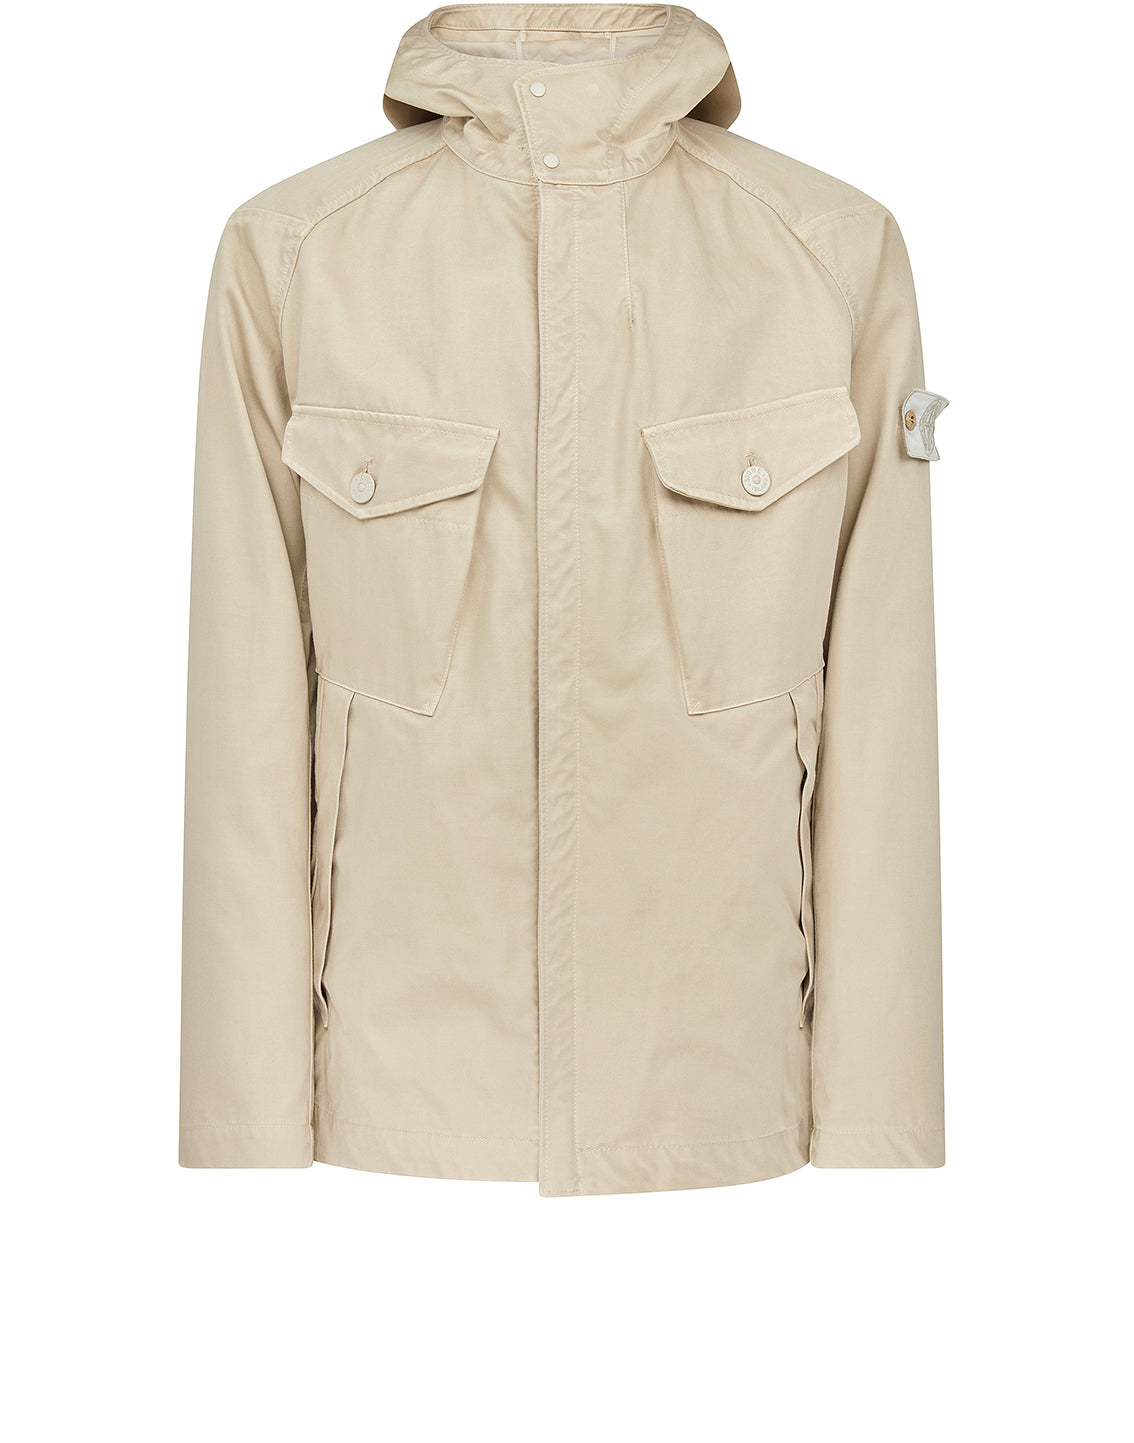 441F1 Raso Gommato Double Ghost Piece Hooded Jacket in Beige